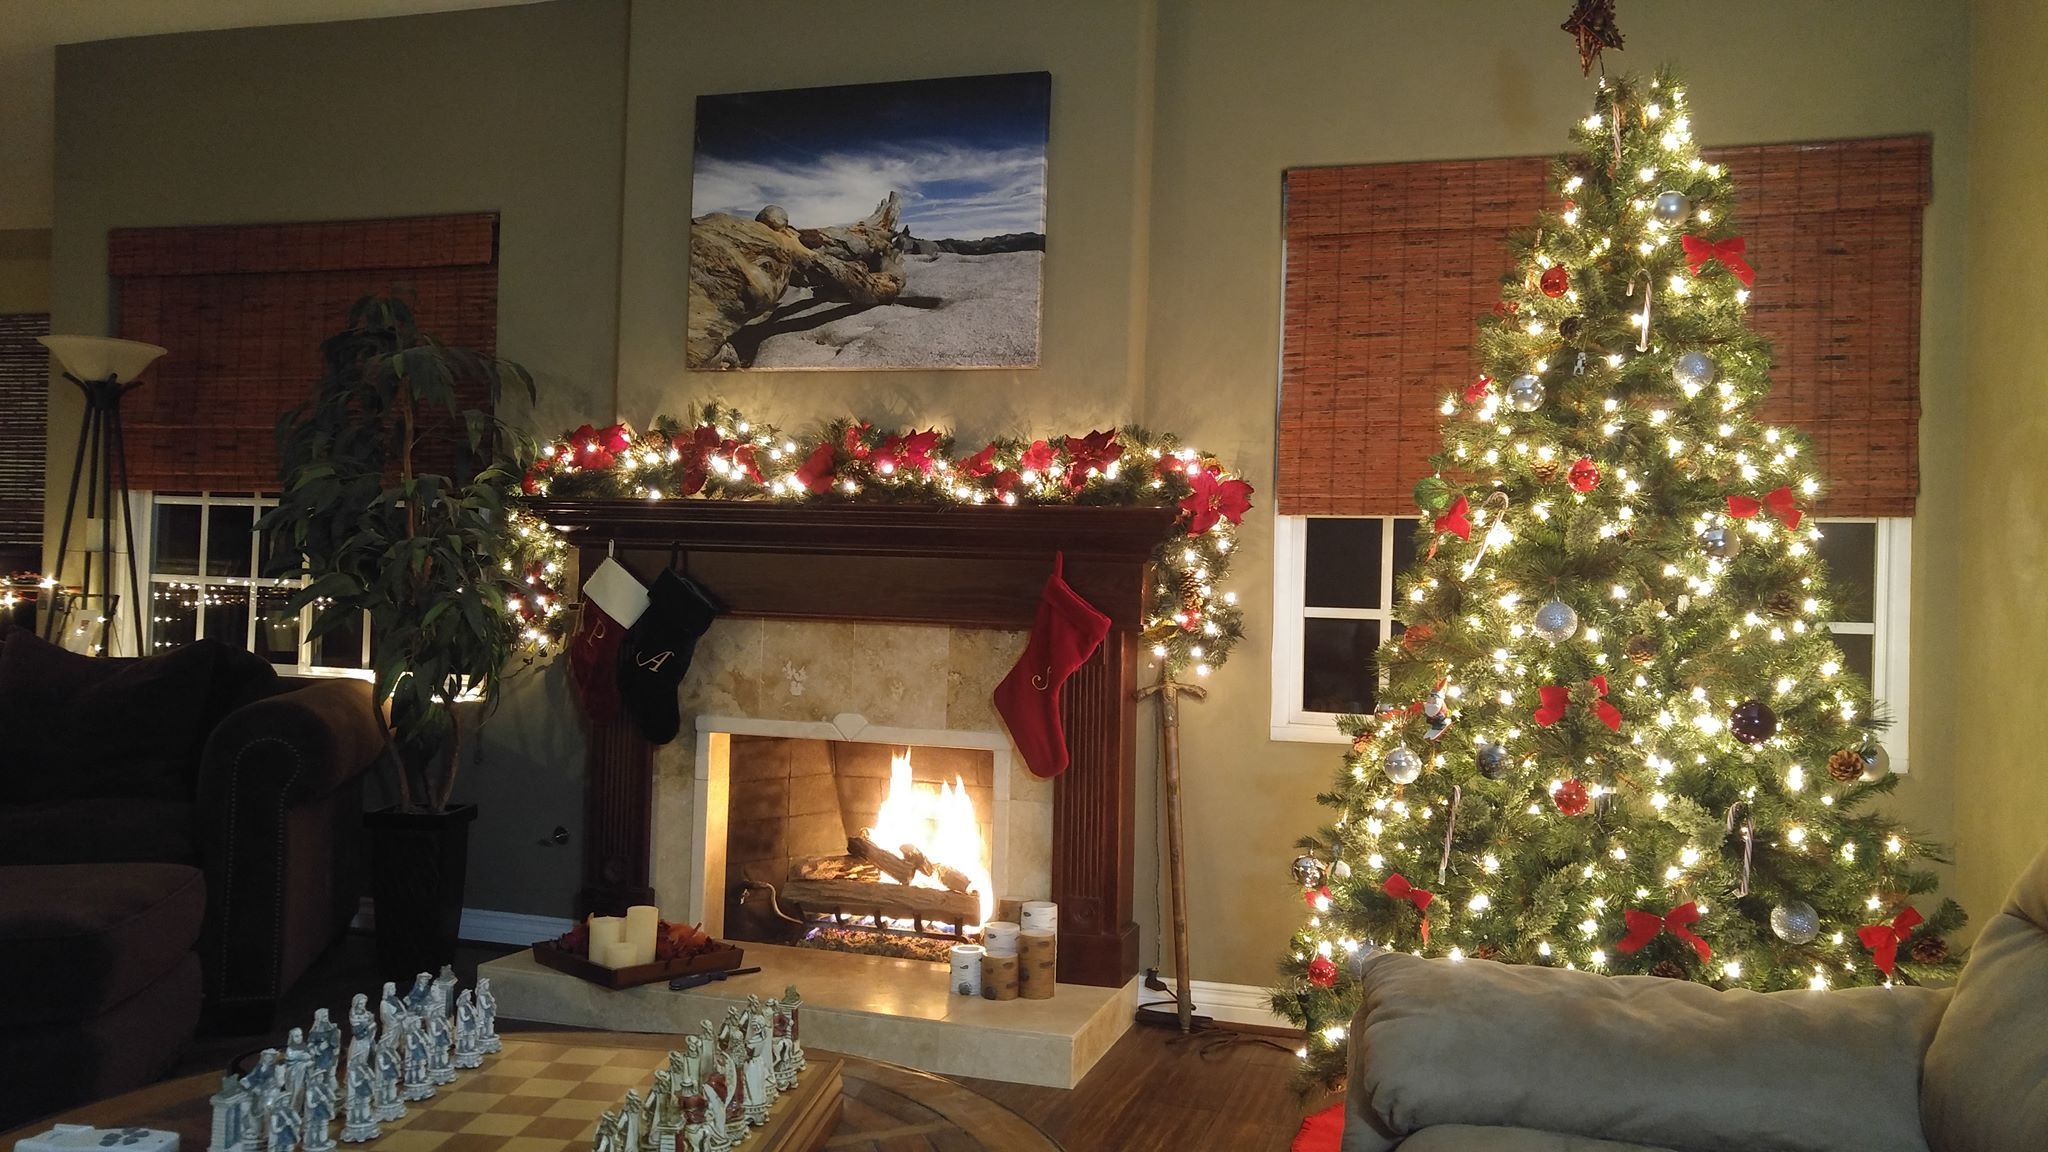 Beautiful Christmas Tree And Fireplace With Chess Set Photo By